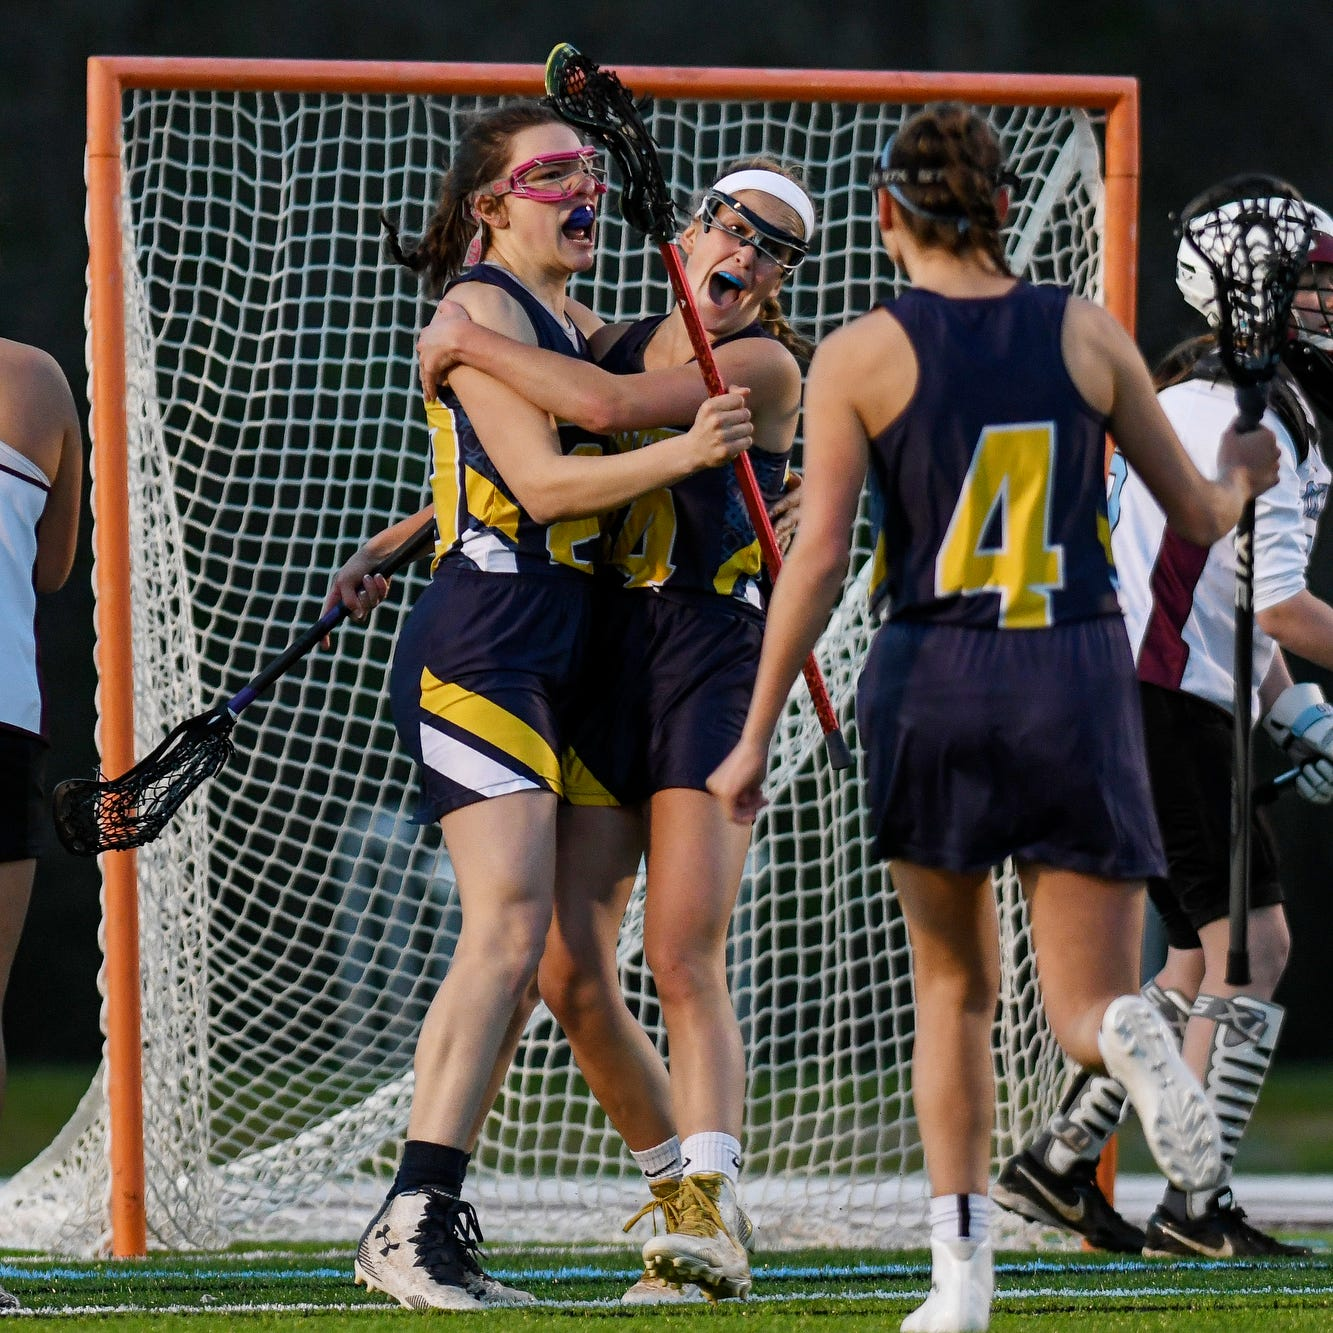 DeWitt's Natalie Yabs, left, celebrates her game-winning goal with teammate Grace Brown during the second half on Friday, May 10, 2019, at Okemos High School. DeWitt beat Okemos 13-12 to win the CAAC tournament final.